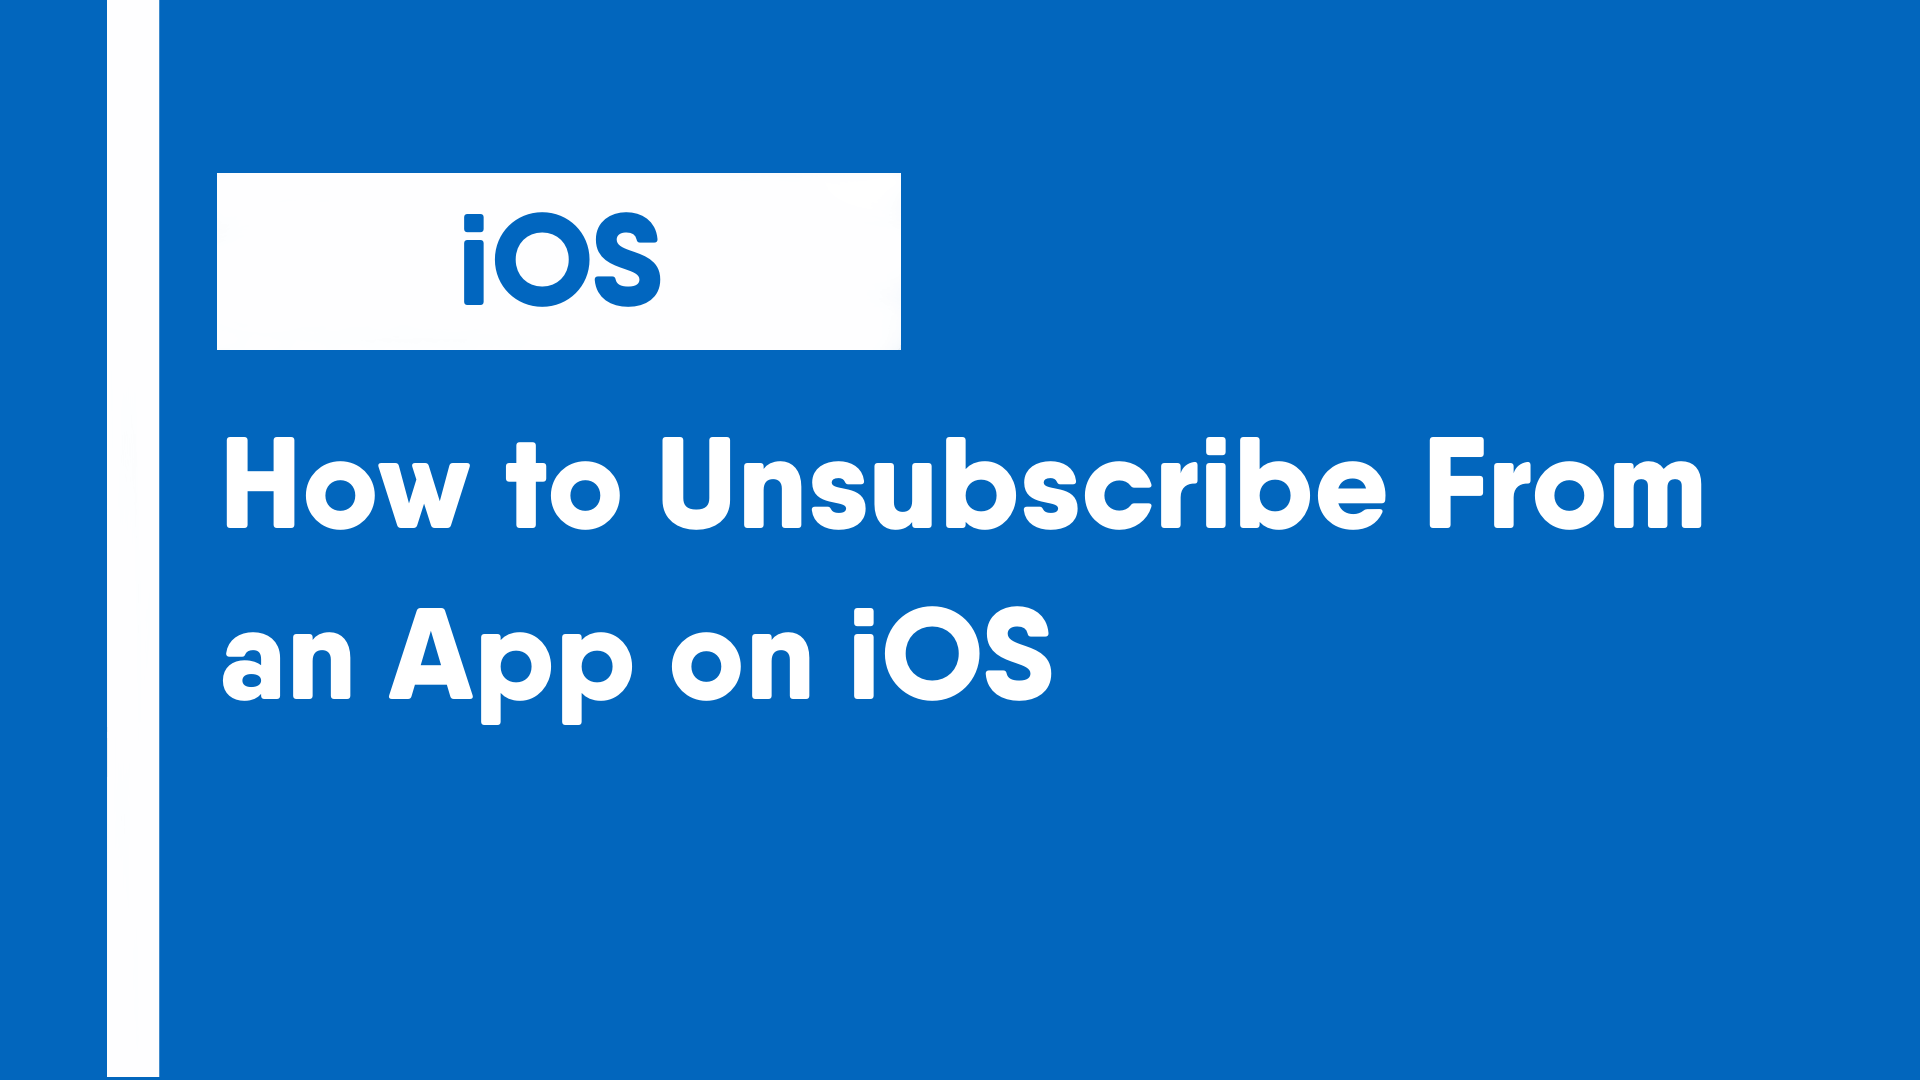 How to Unsubscribe From an App on iOS